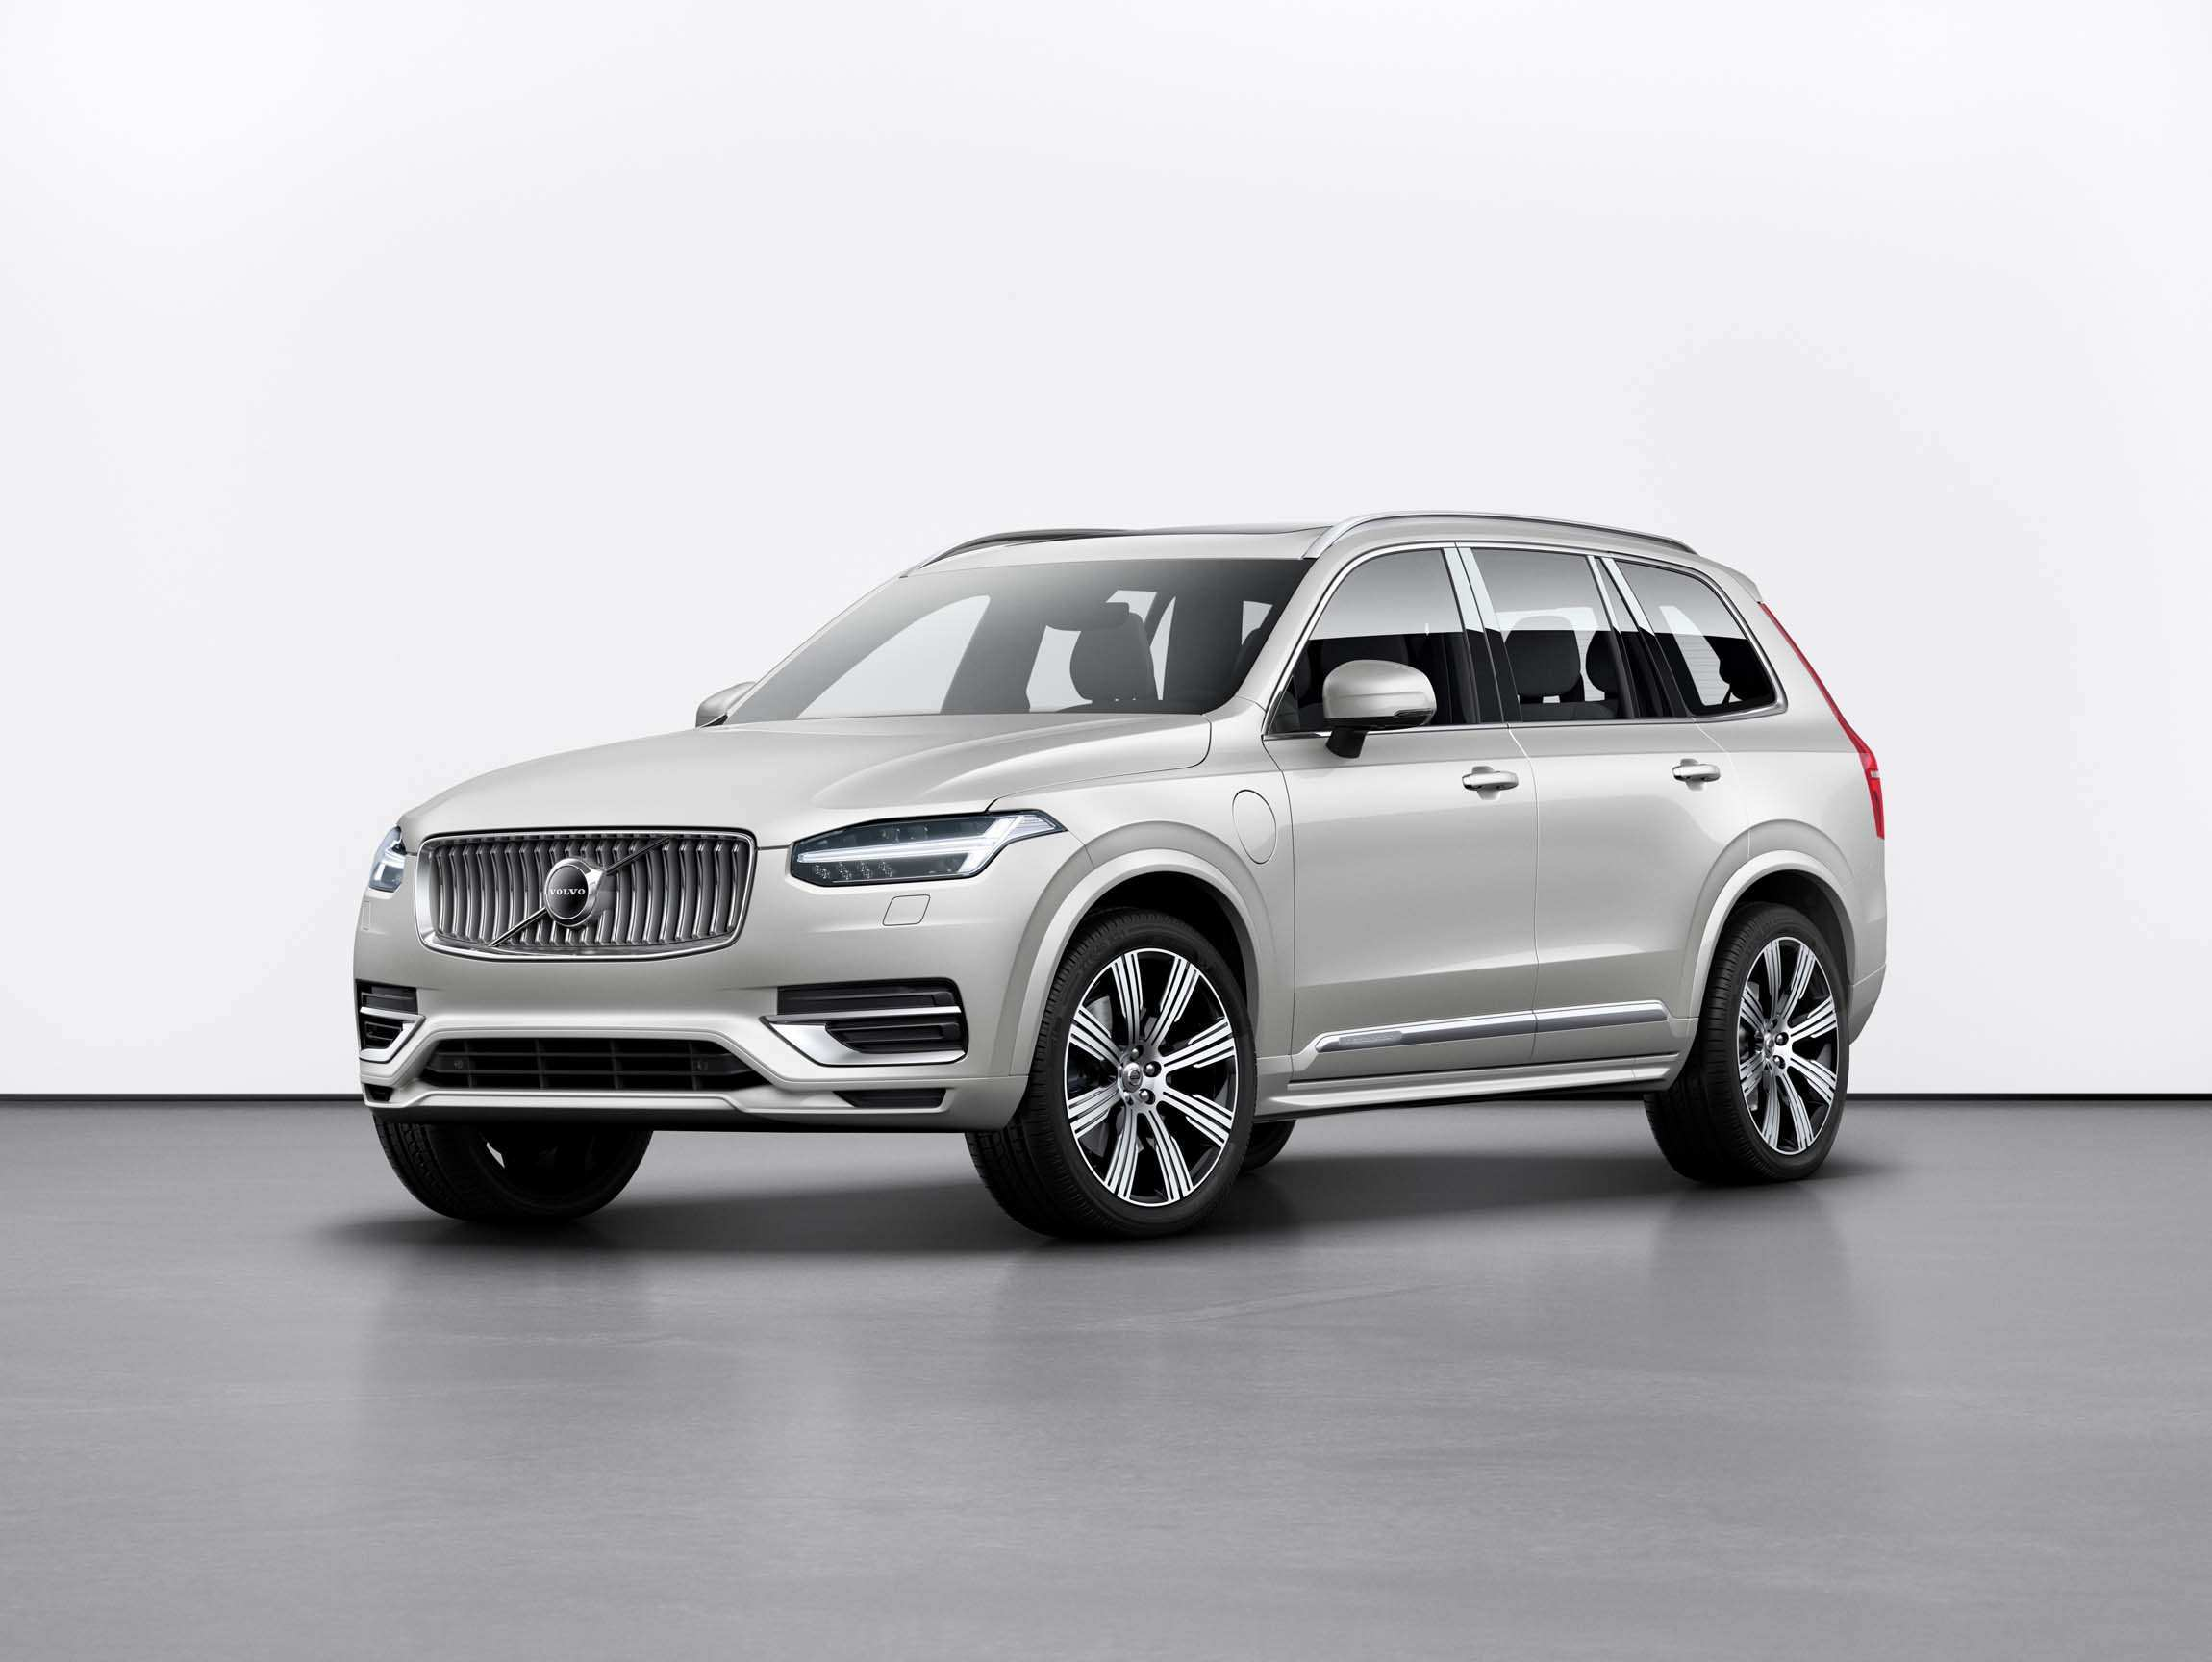 82 New Volvo Model Year 2020 Images